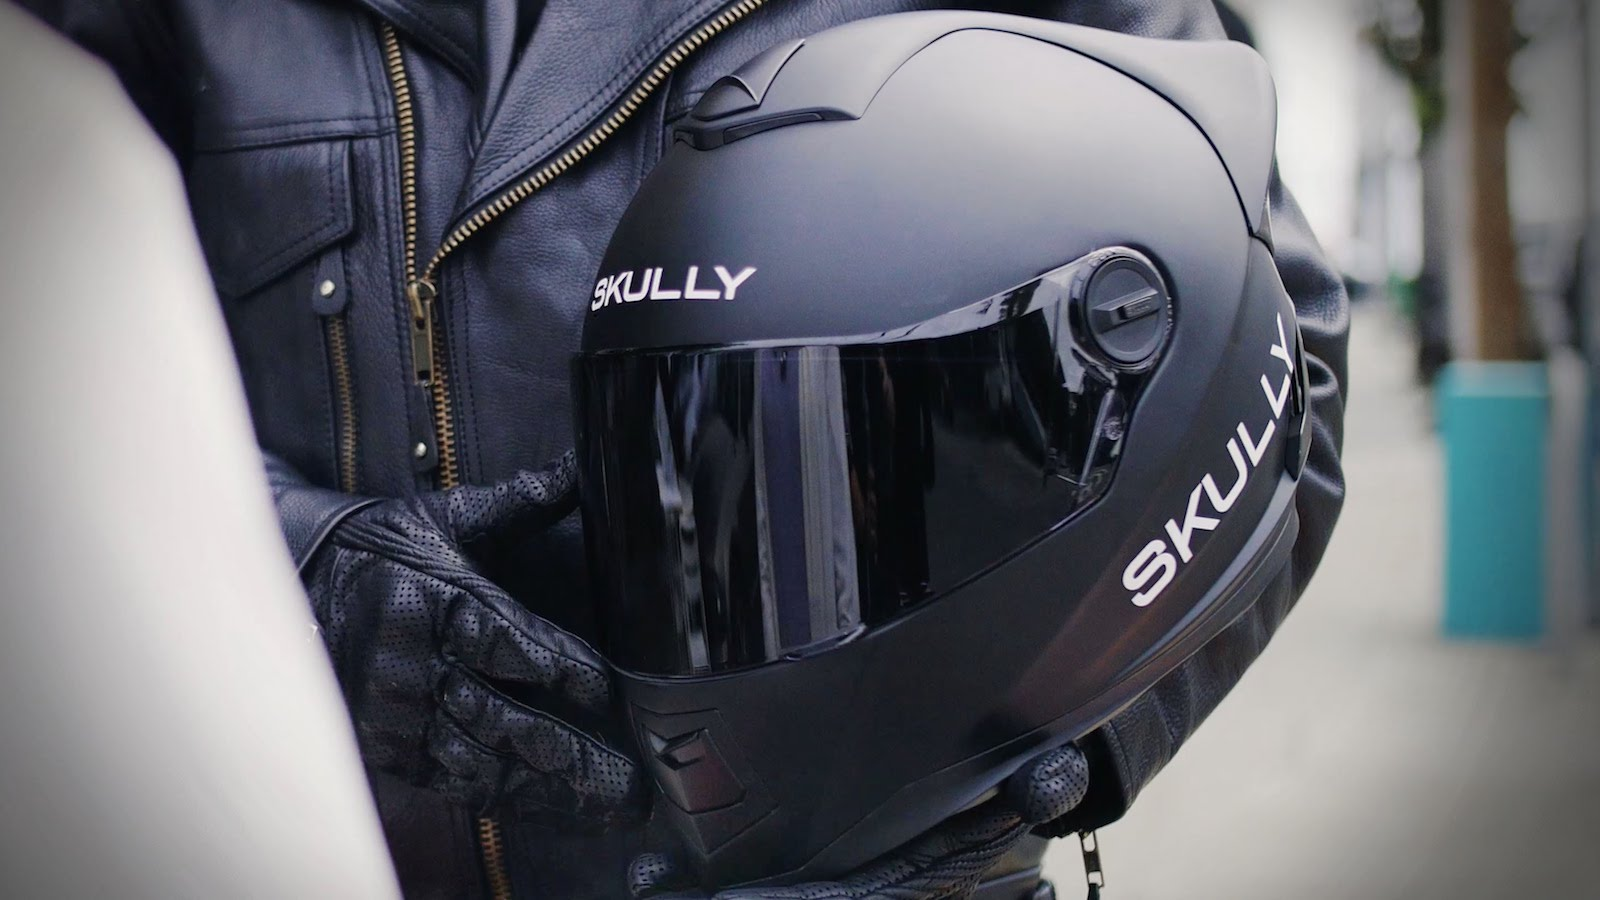 A New Company Is Trying To Revive The Skully Ar Helmet